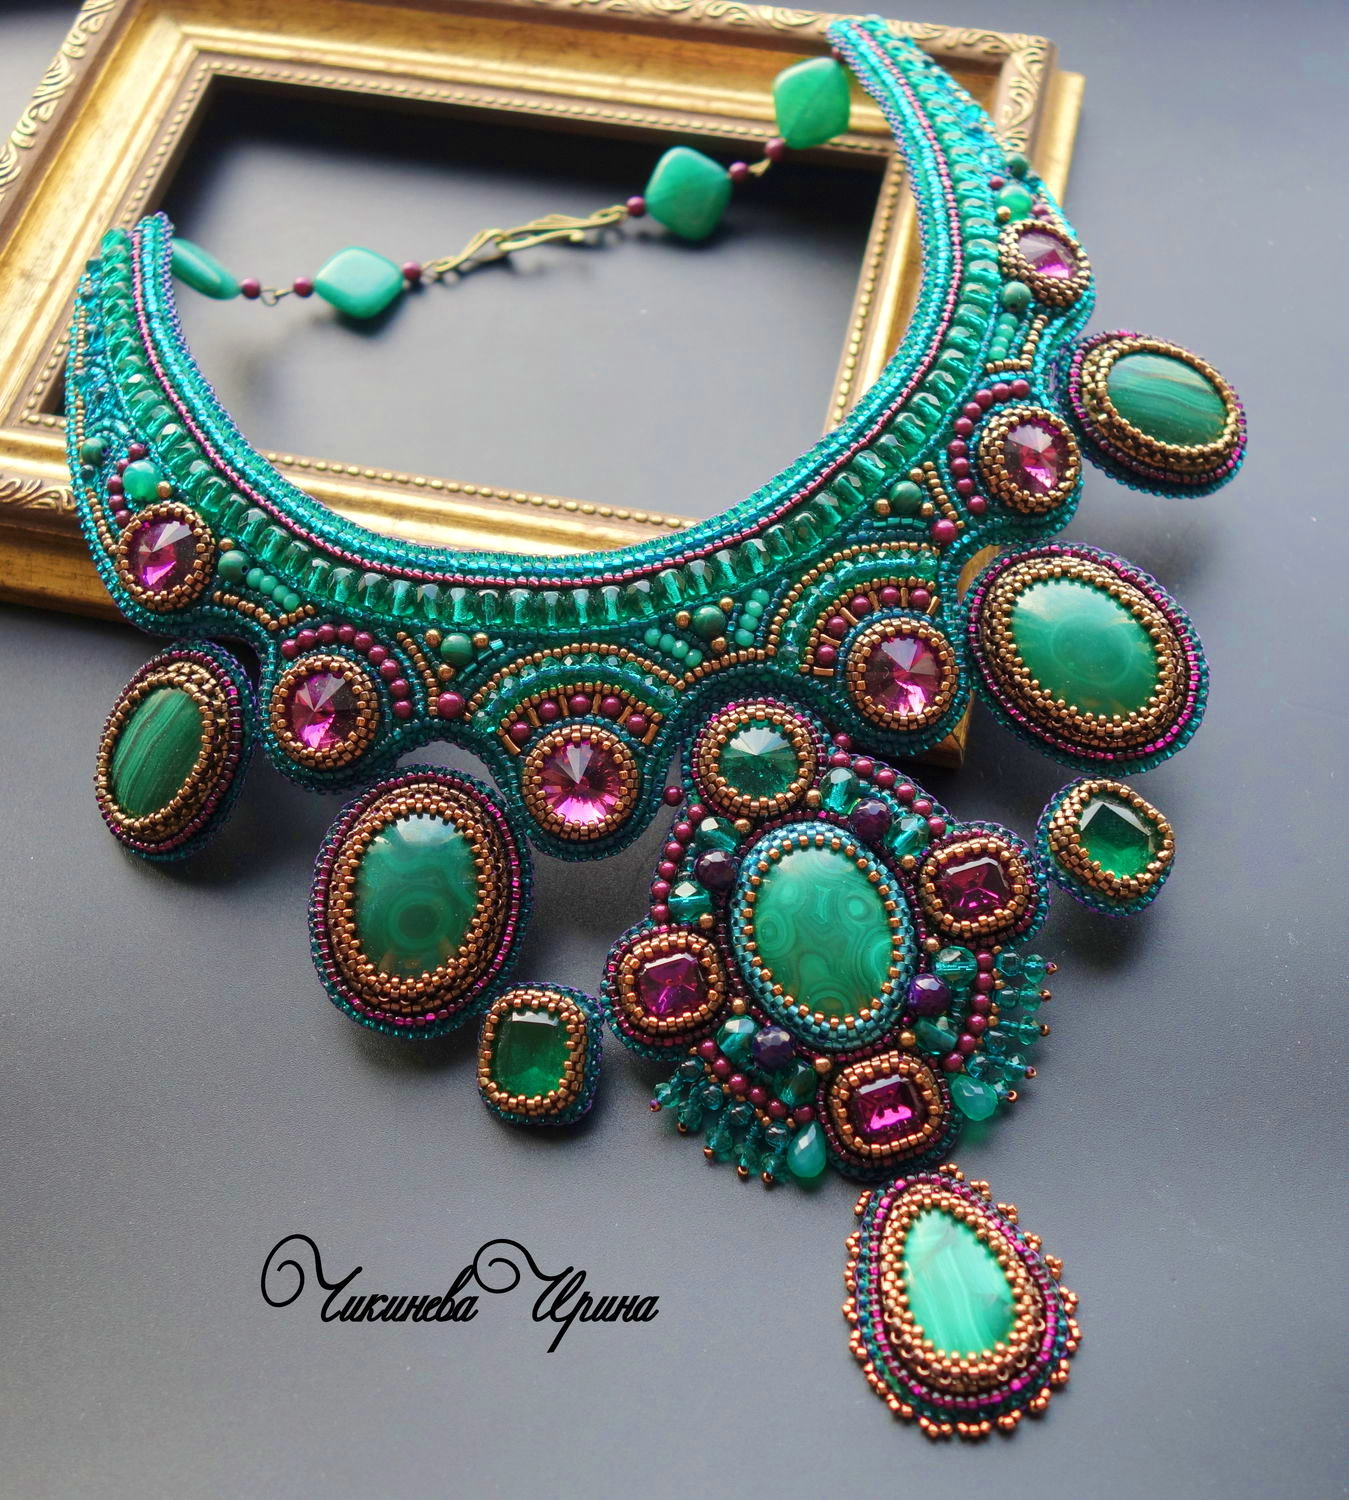 Beautiful bead embroidered jewelry by Irina Chikineva